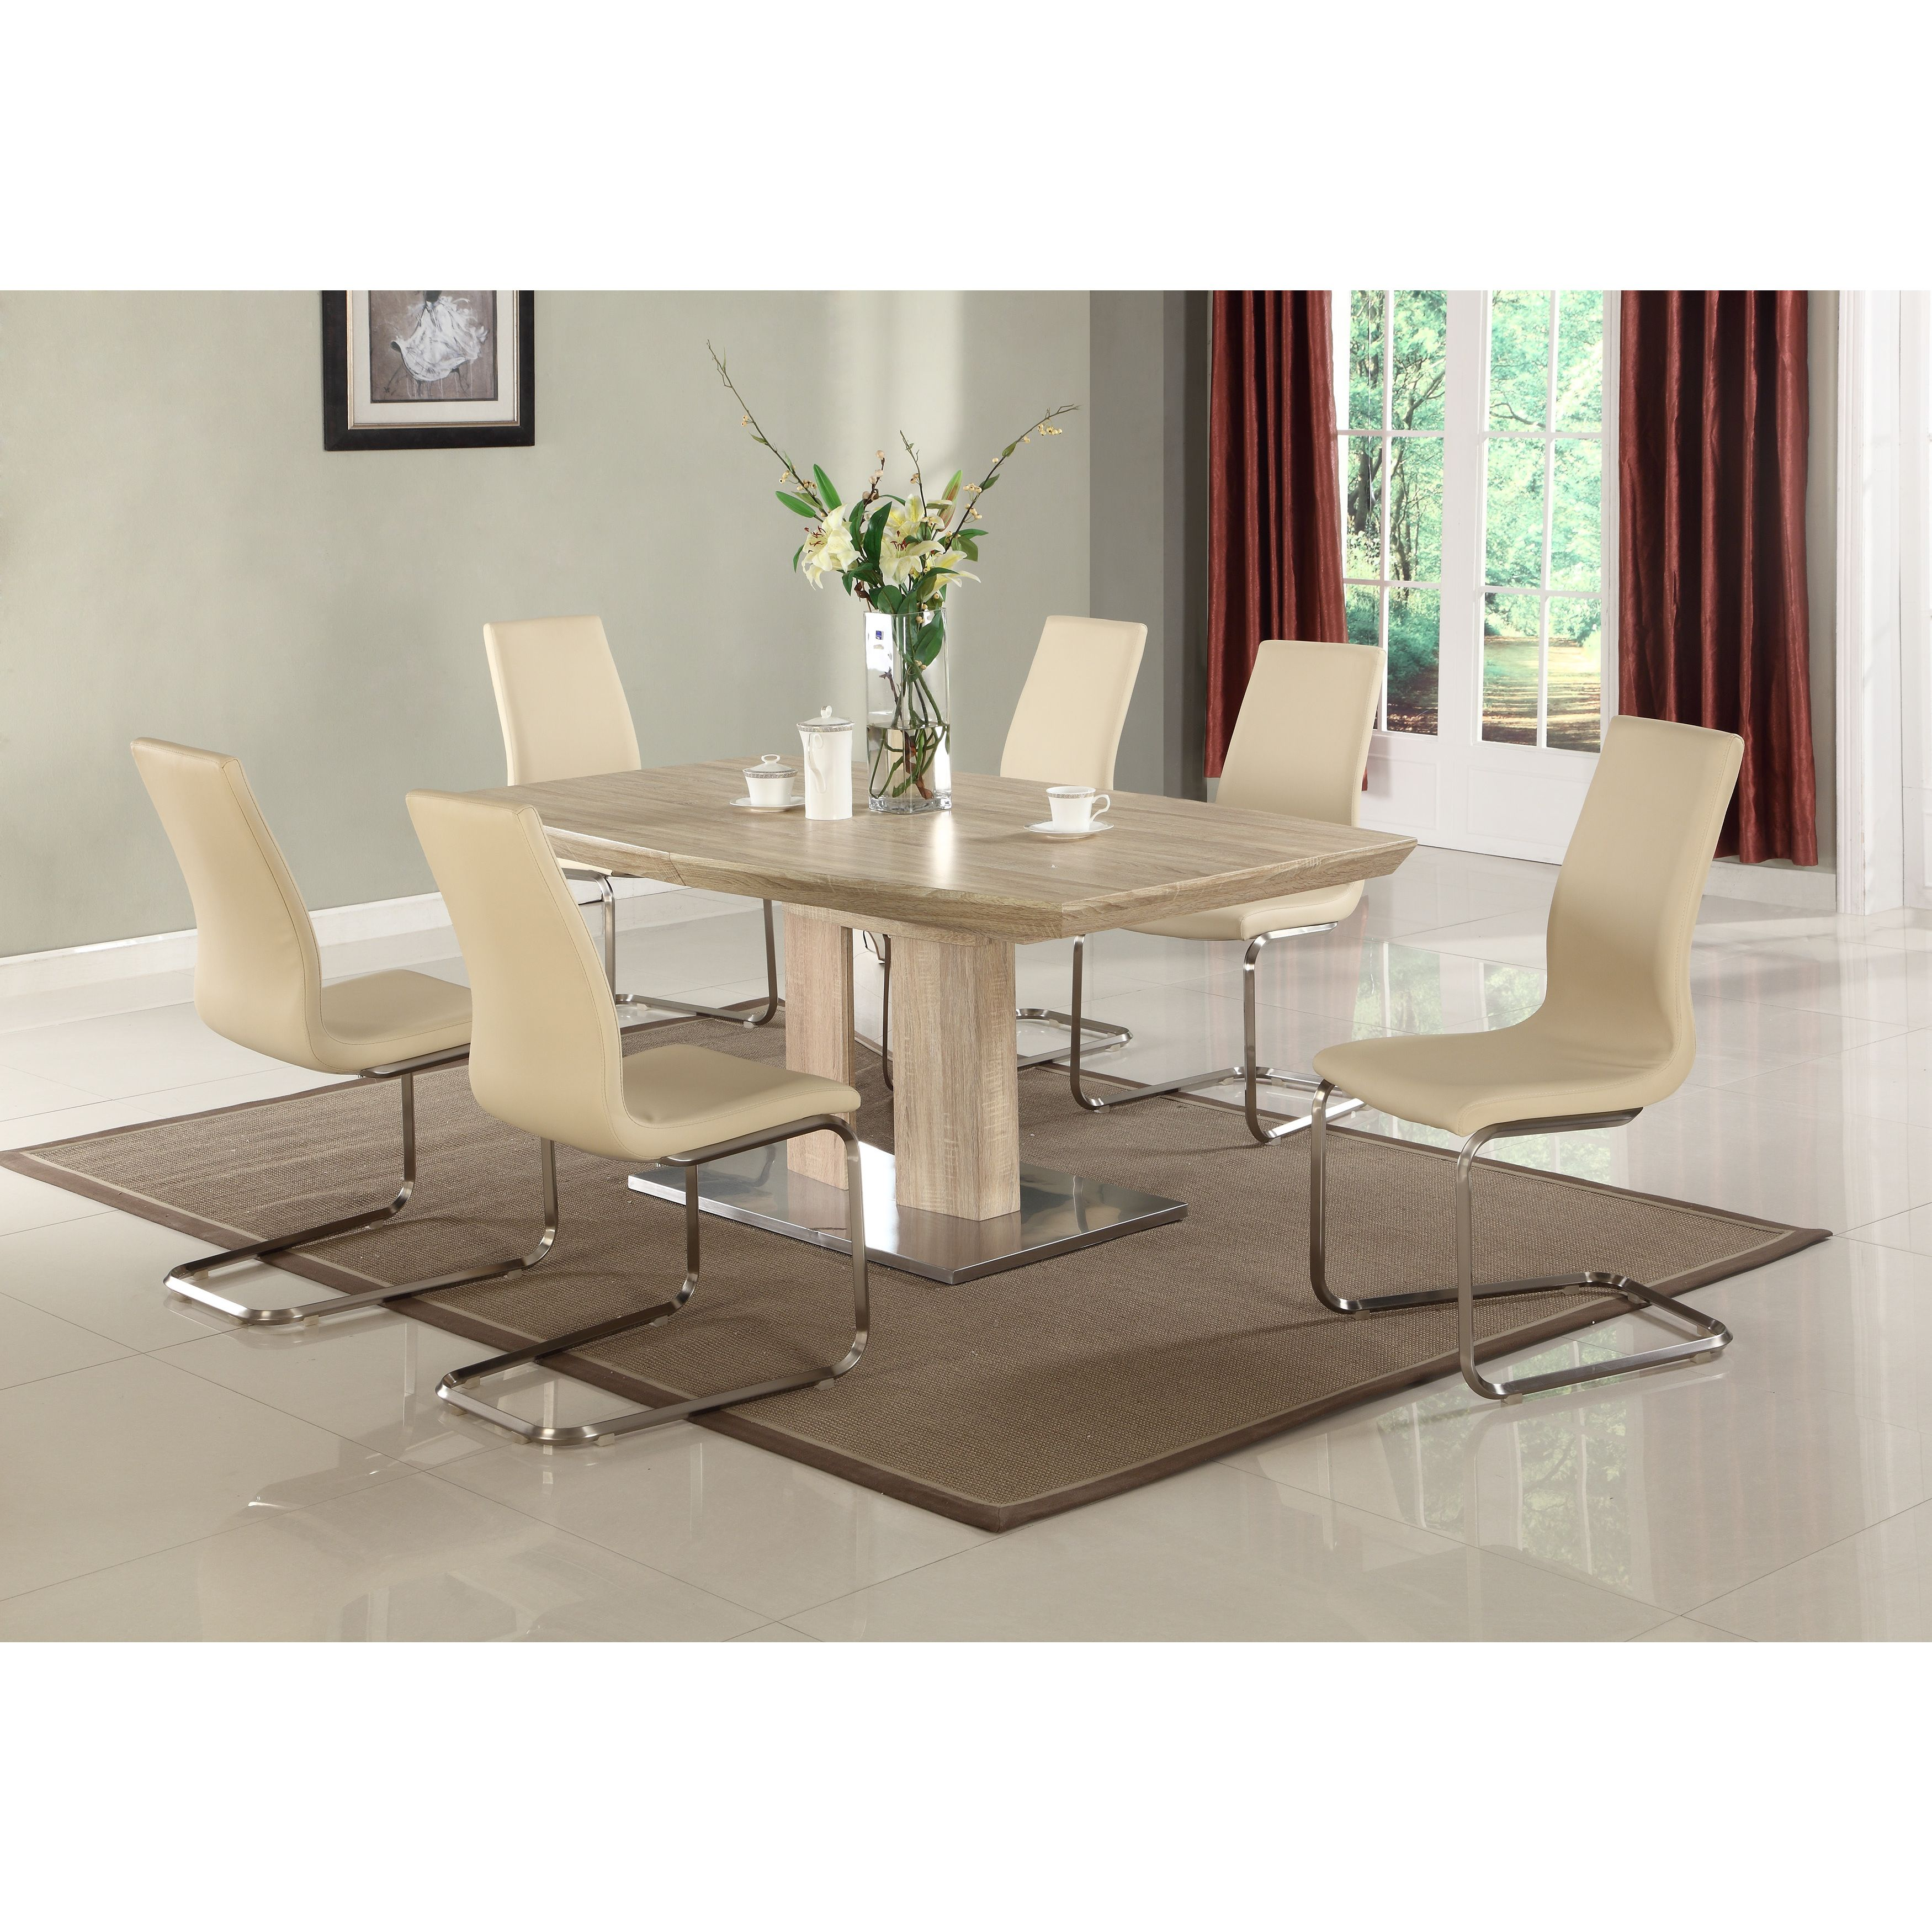 This Modern Light Oak Dining Table Will Add Style To Any Dining Area. The  Table Is Finished In Light Oak 3D Paper With A Stainless Steel Base.